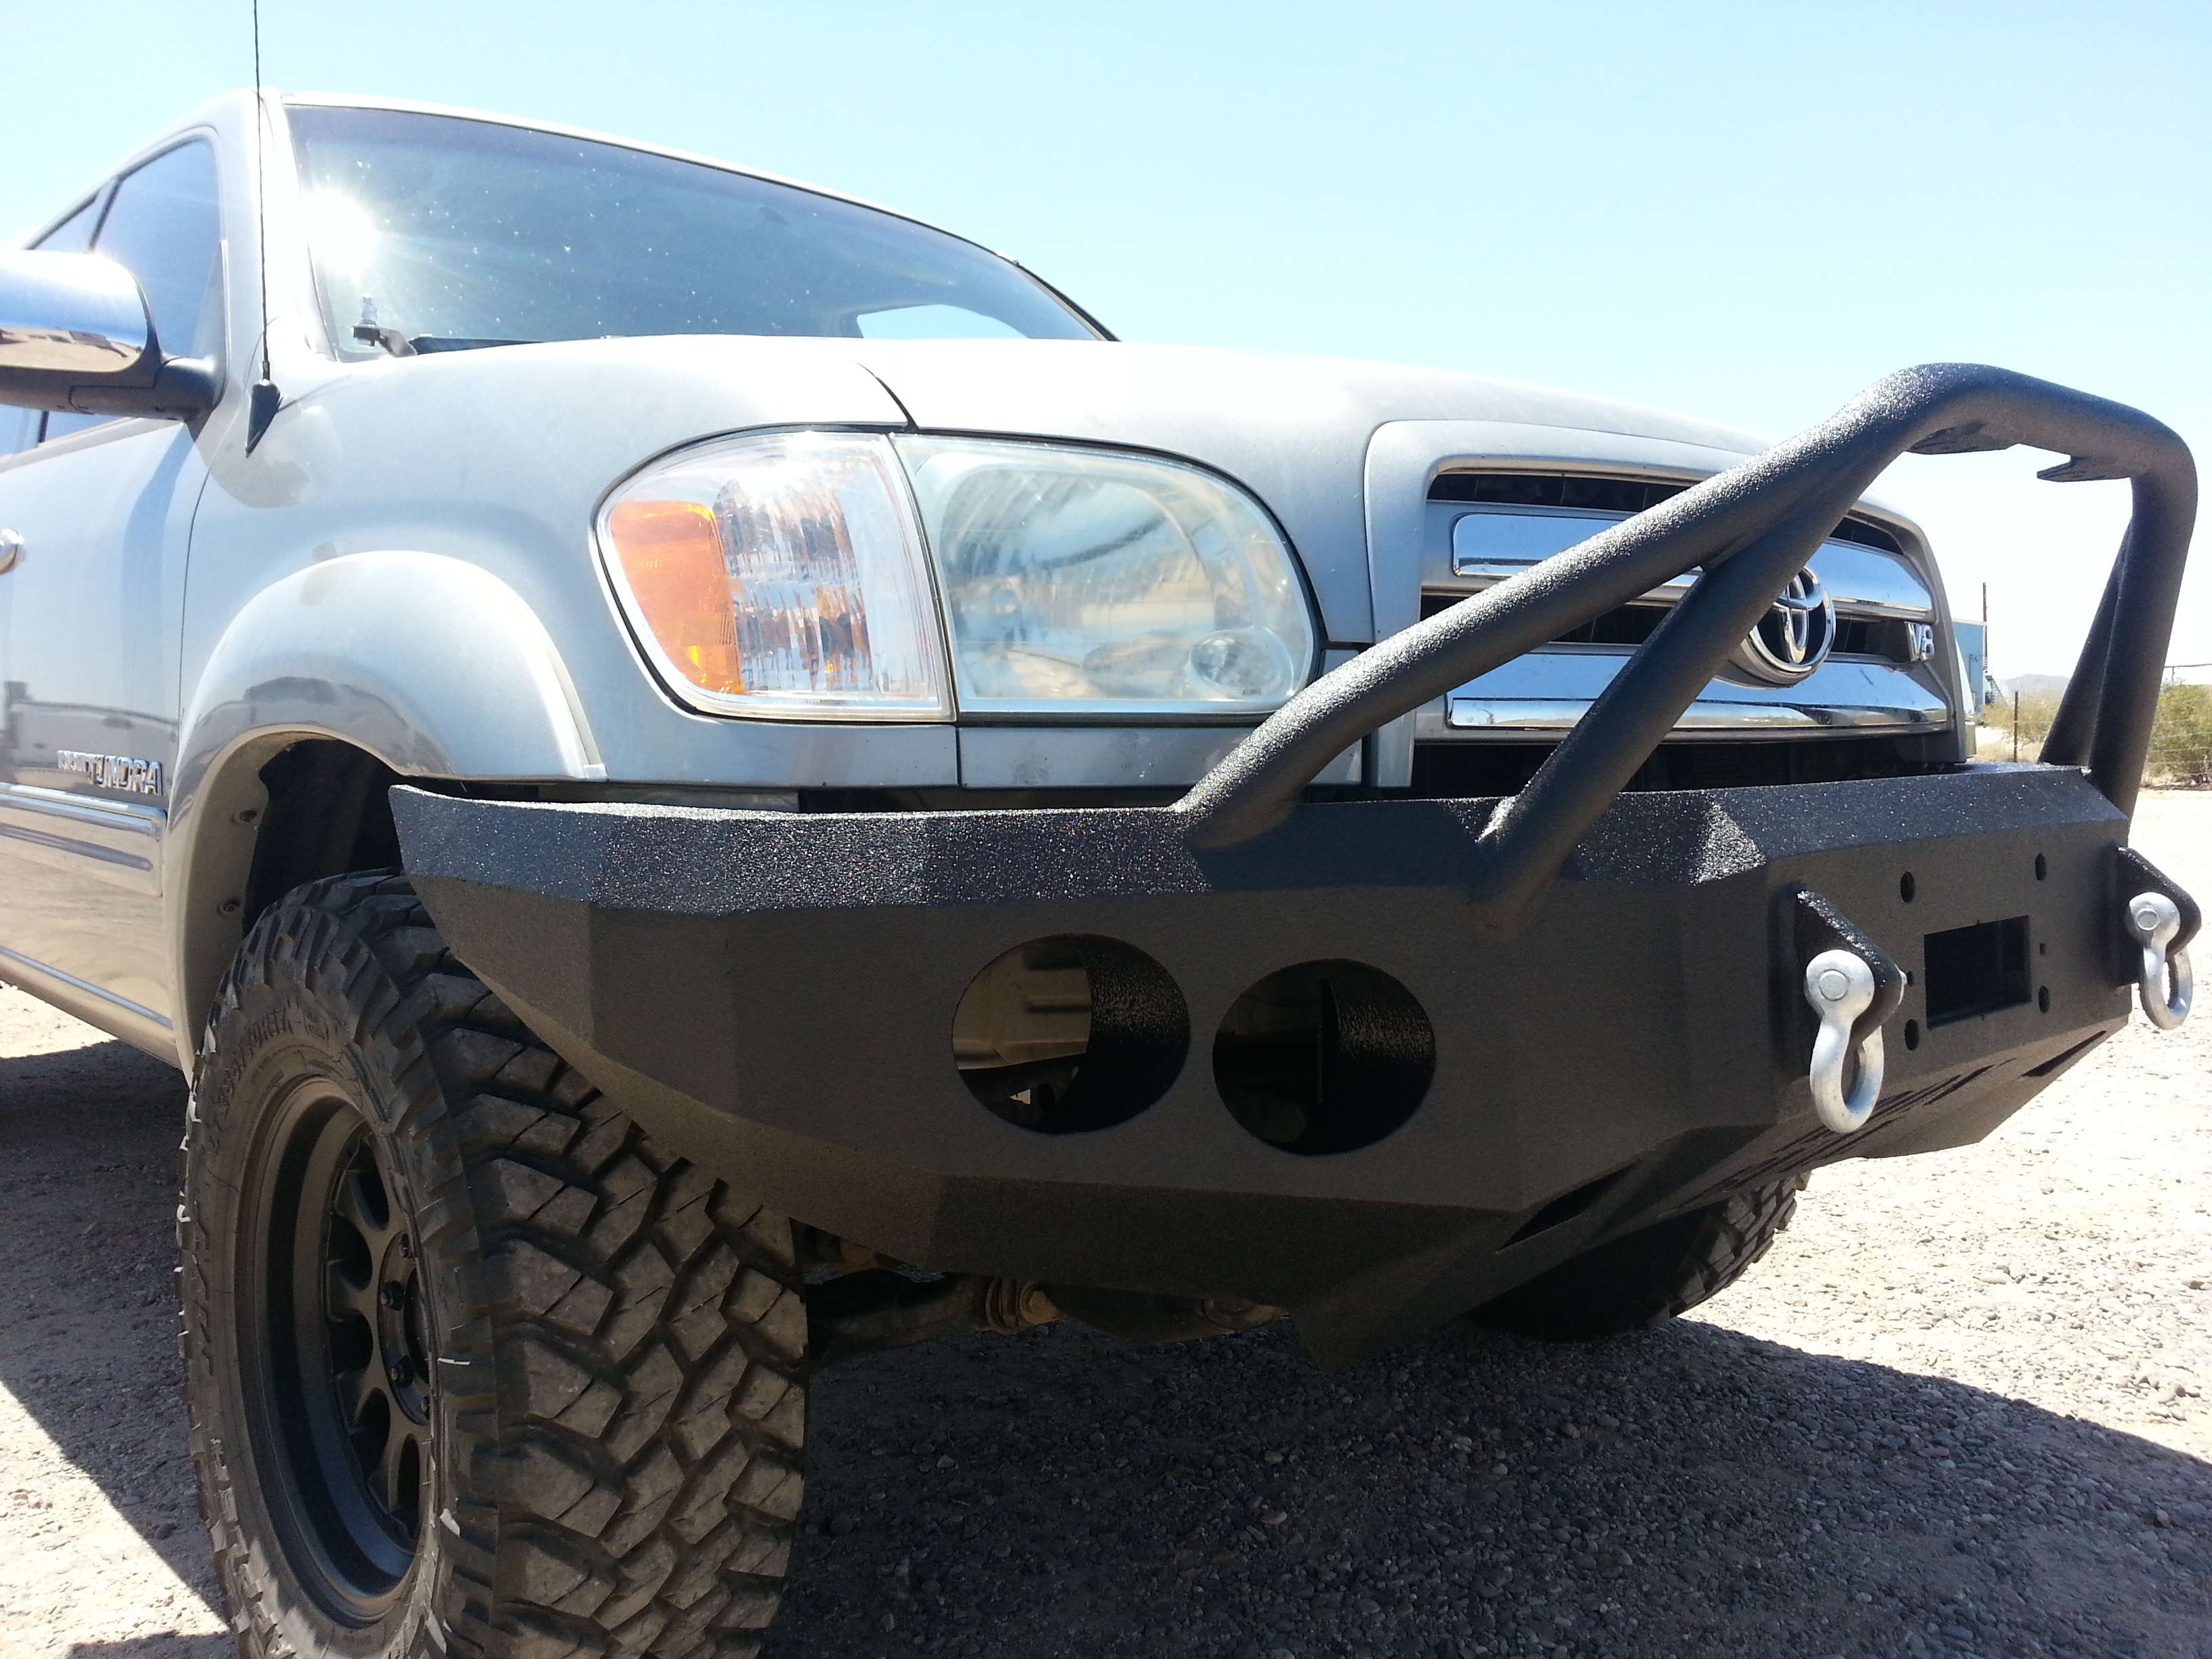 2003 Toyota Tundra Front Bumper Pictures To Pin On